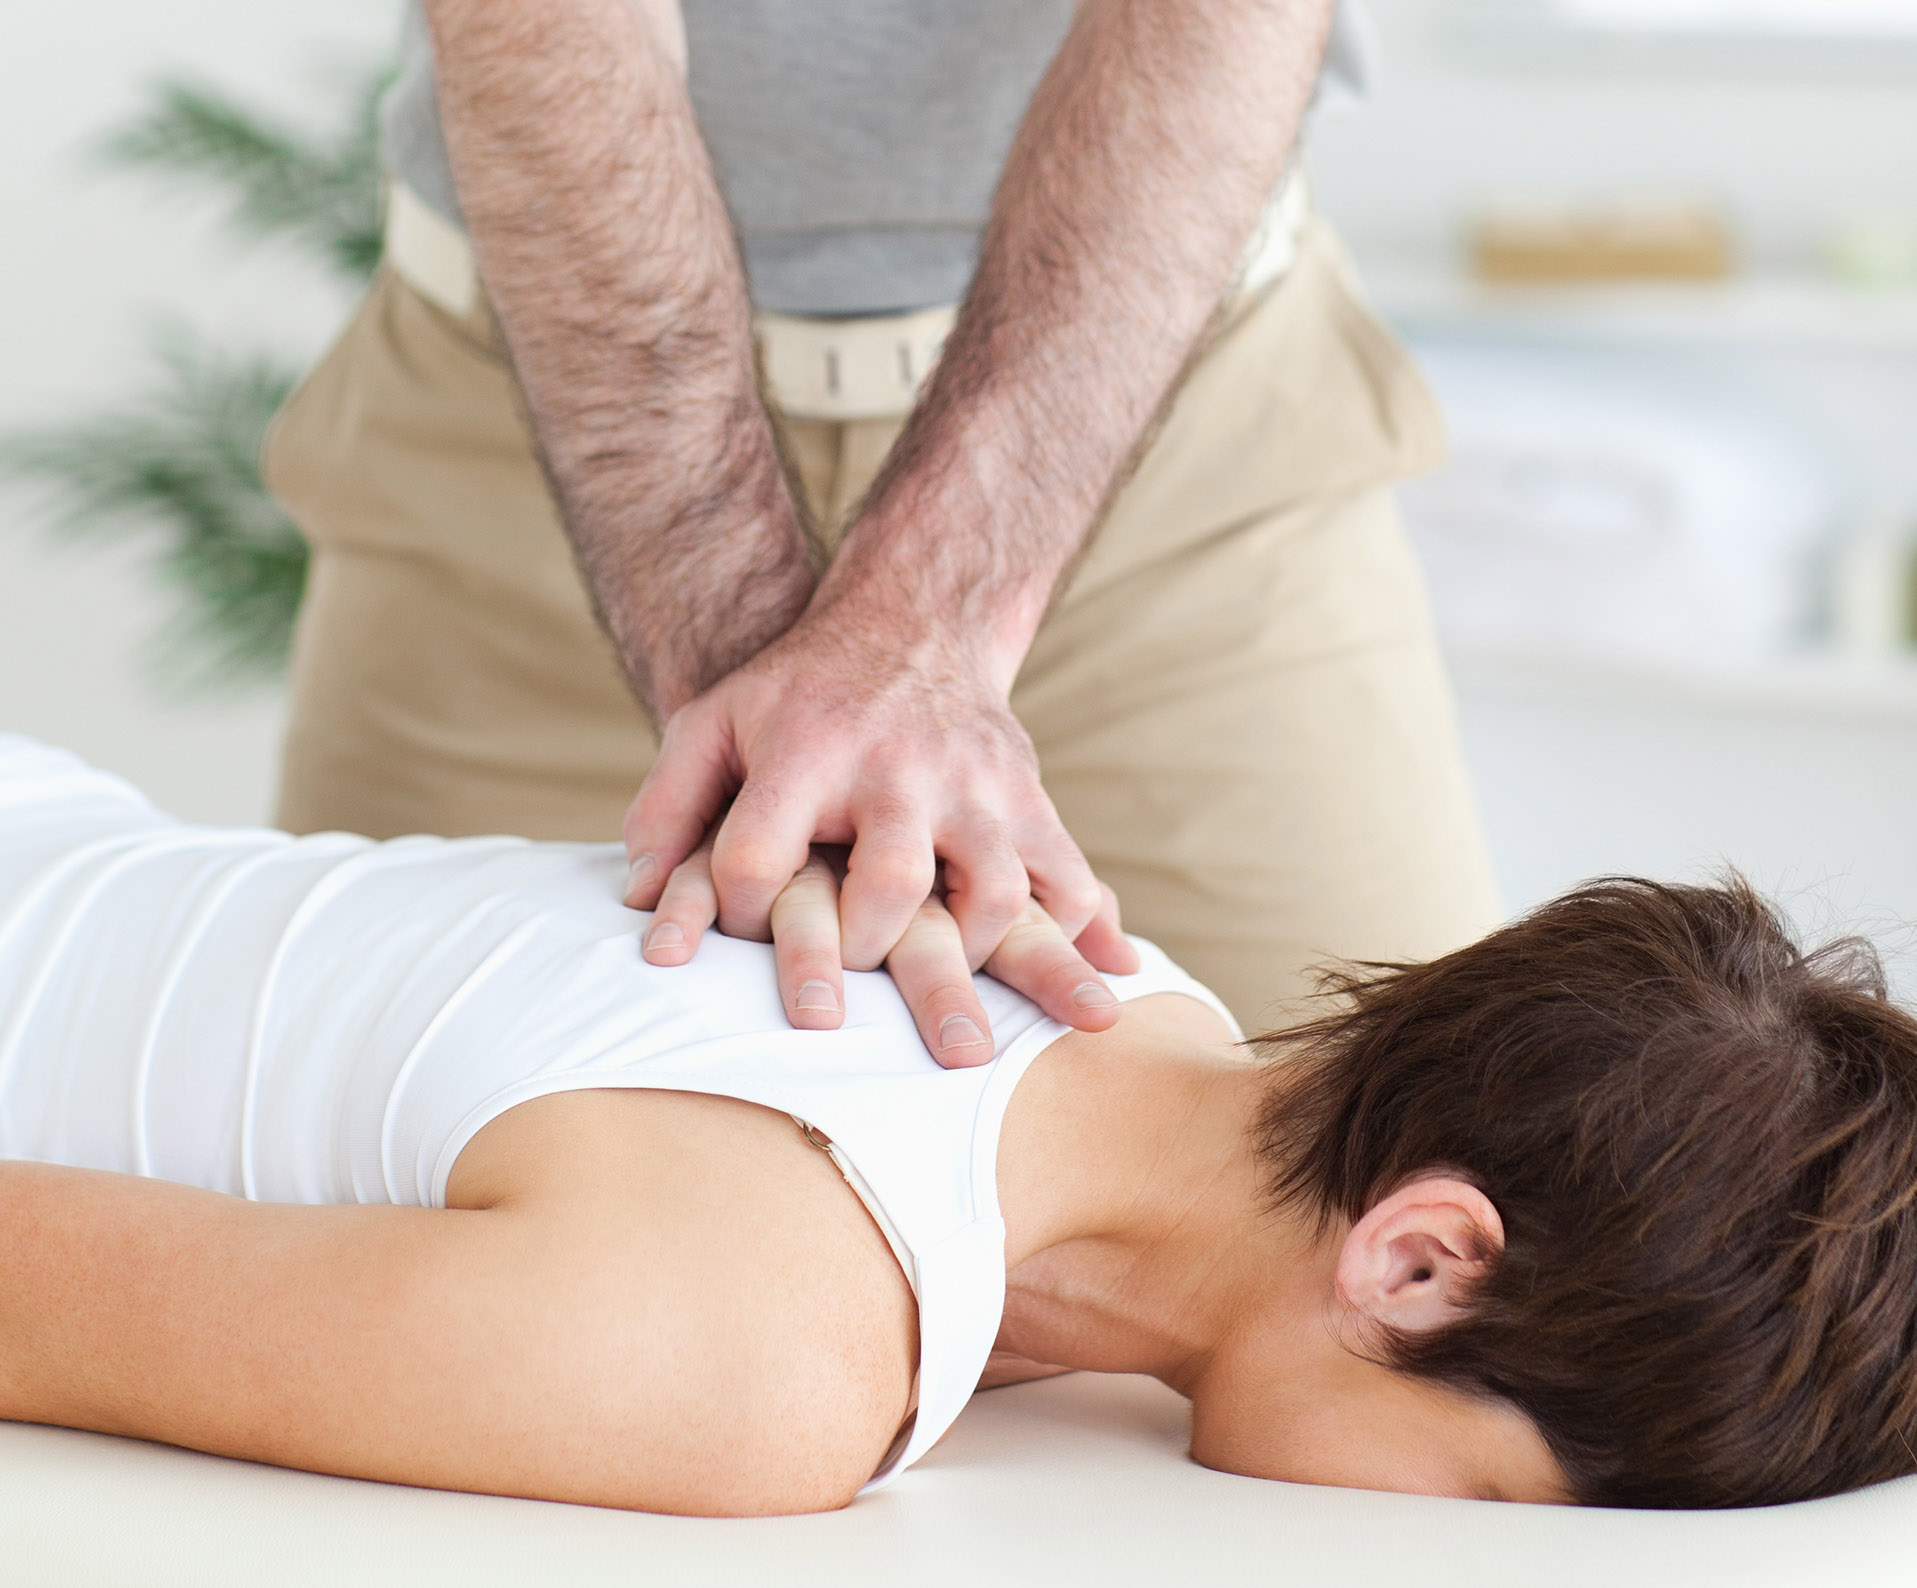 Chiropractors specialise in adjustments that move specific joints in the body to provide pain relief and increase strength